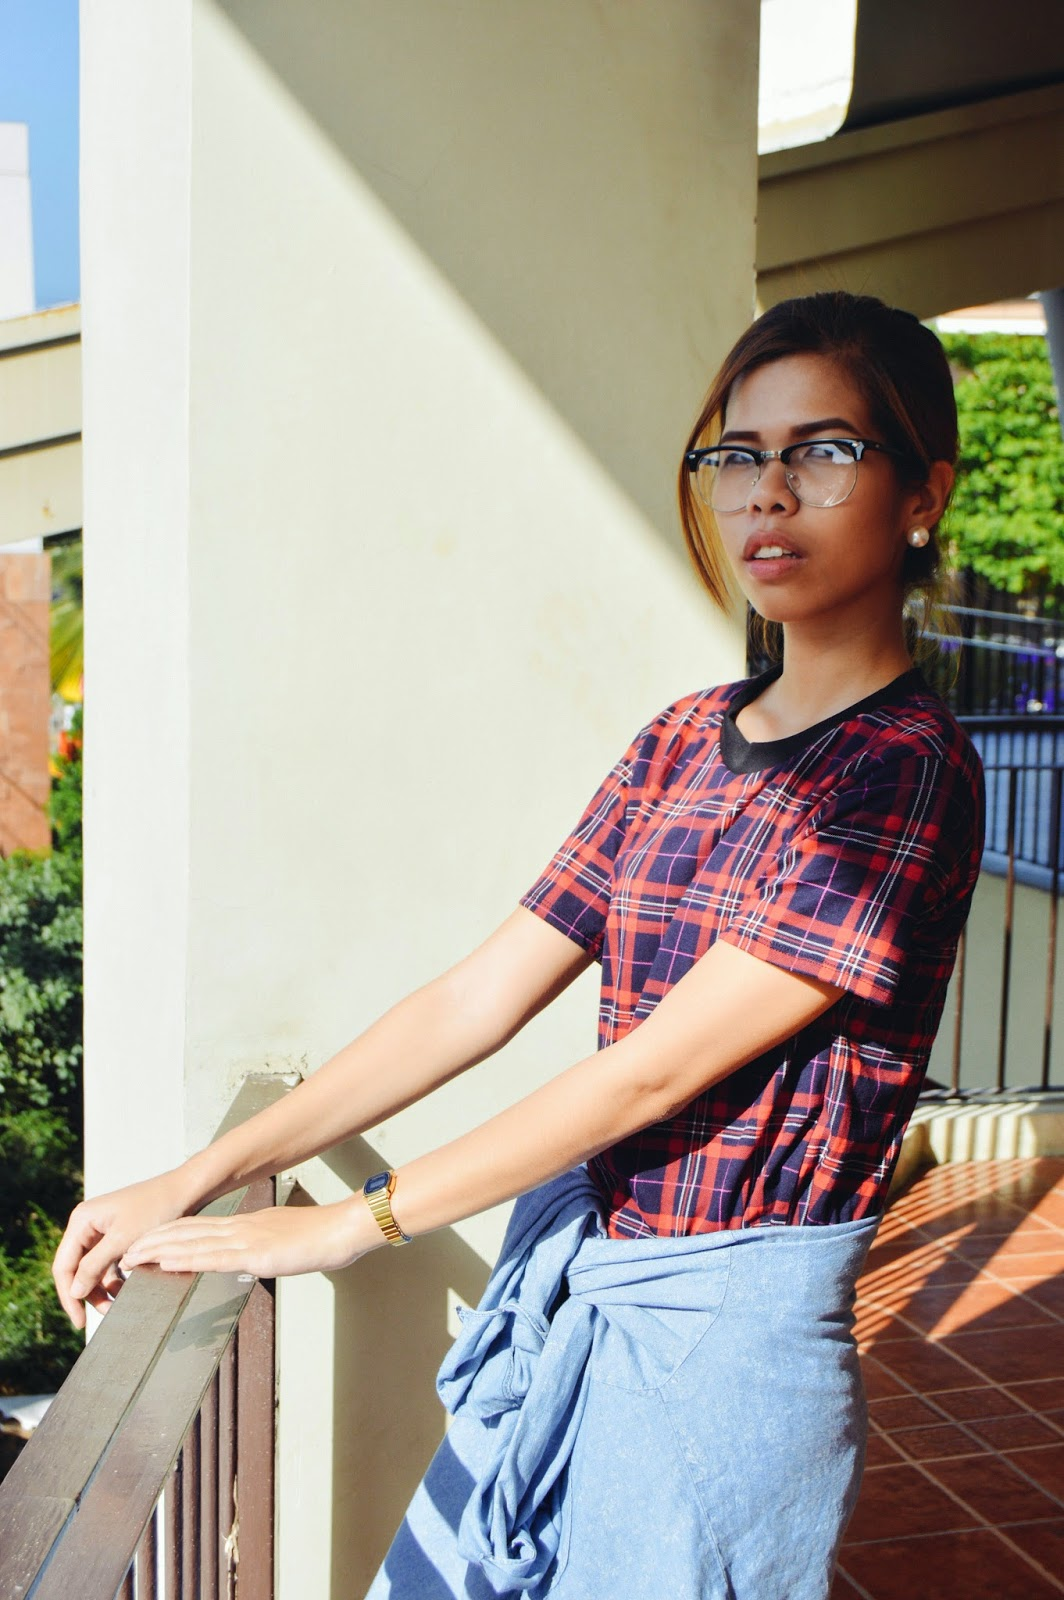 flannel, fashion blogger, style blogger, cebu blogger, cebu style blogger, blogger, filipina blogger, cebuana blogger, nested thoughts, katherine cutar, katherine anne cutar, katherineanika, katherine annika, ootd, ootd pilipinas, urban fashion, denim, flannel ph, basic ph, basic ootd, basic cebu, chunky sandals, chunky sandals ph, plaid fashion, plaid outfit